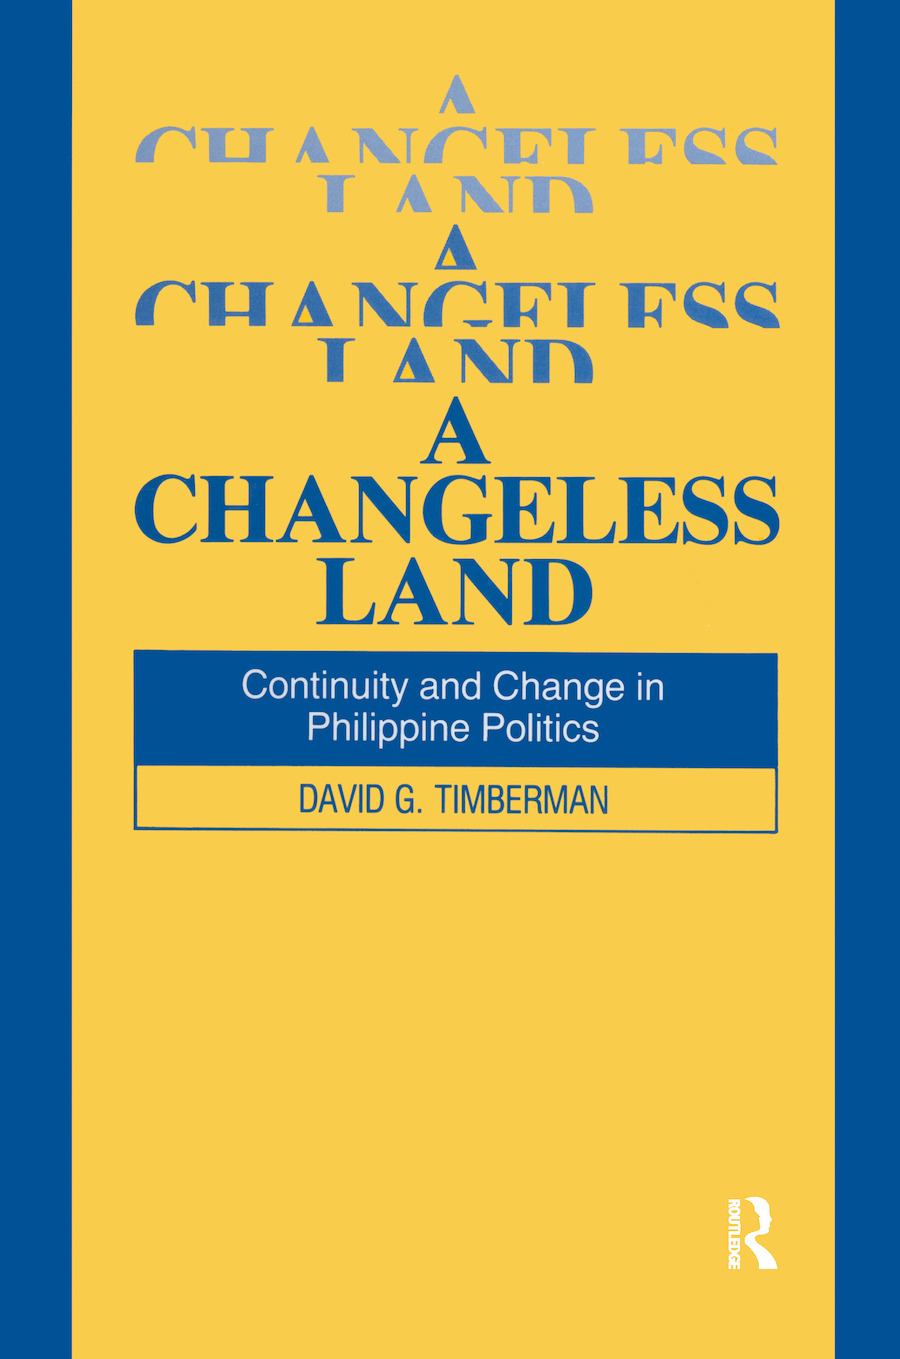 A Changeless Land: Continuity and Change in Philippine Politics